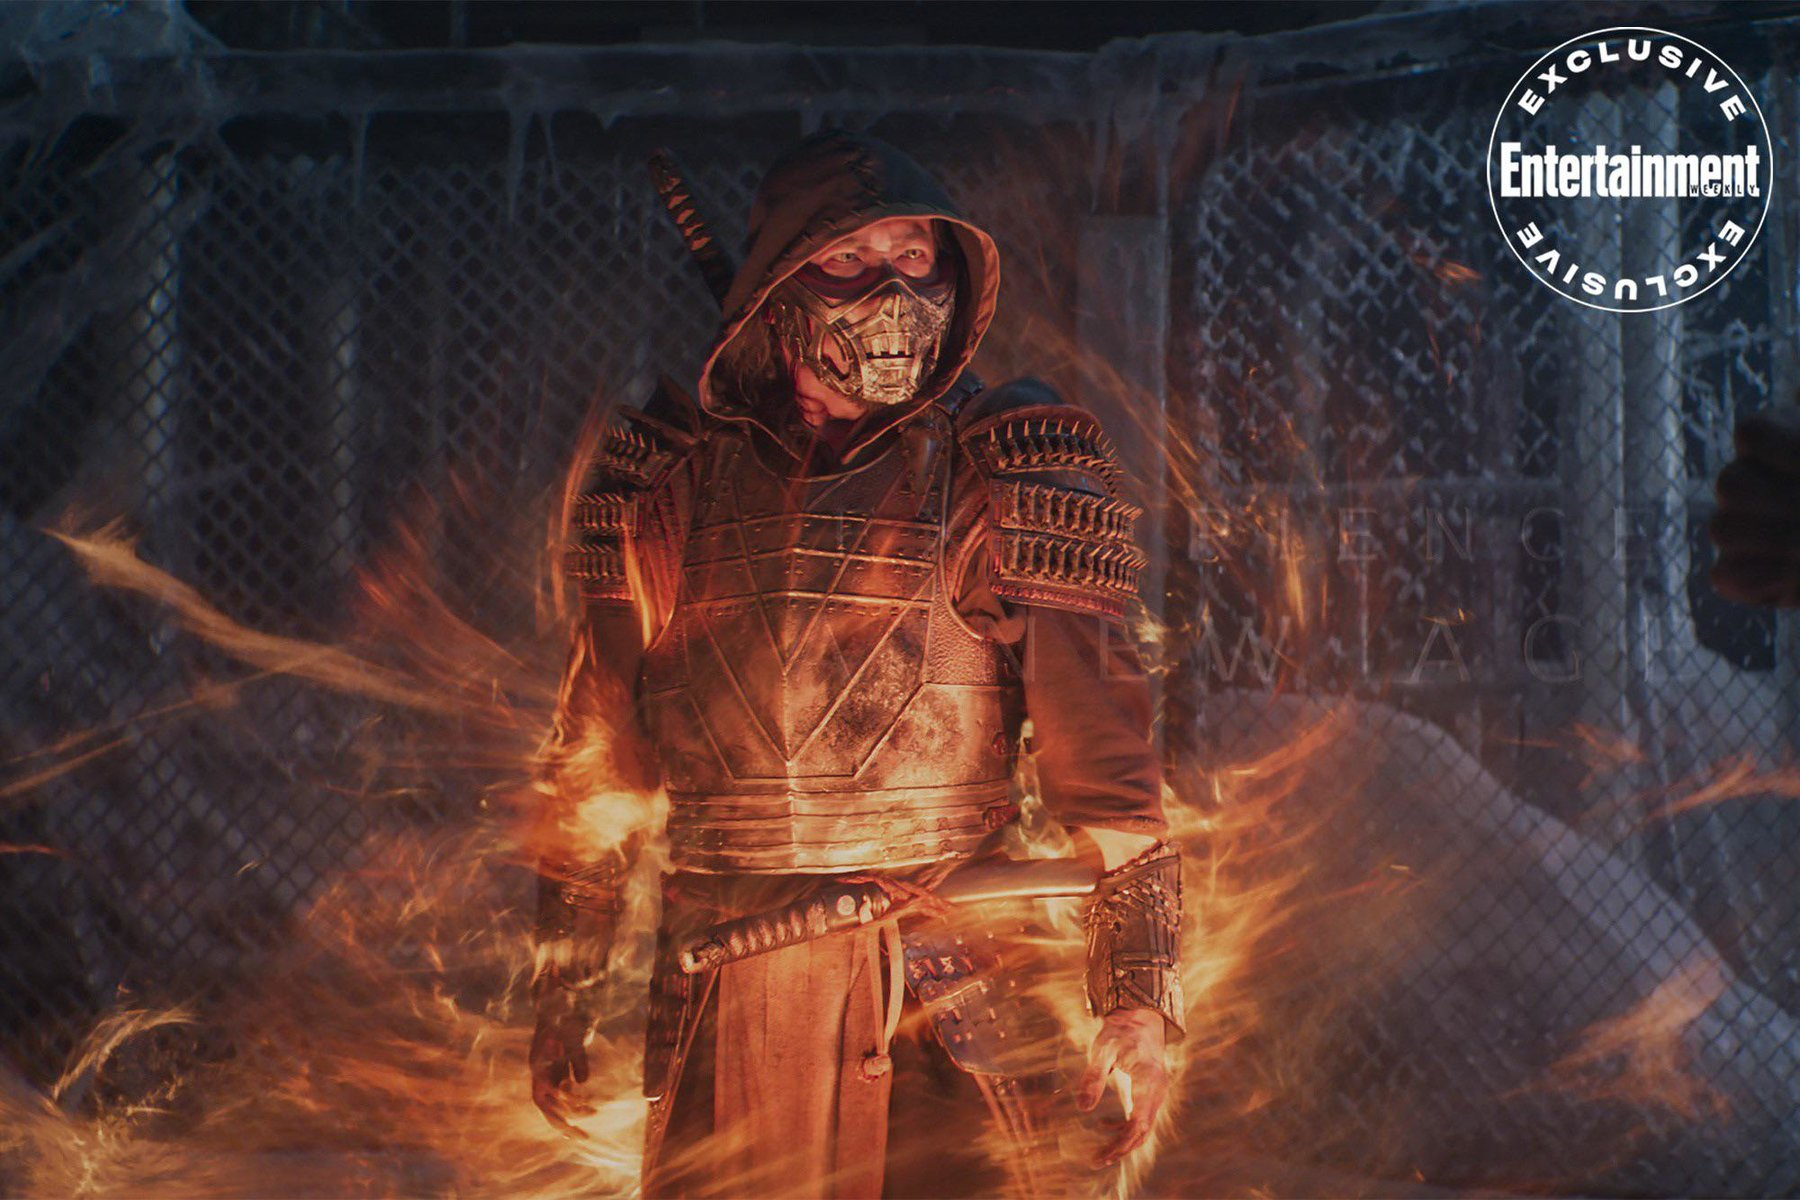 Scorpion appears in a whirlwind of hellfire in the 2021 MK movie